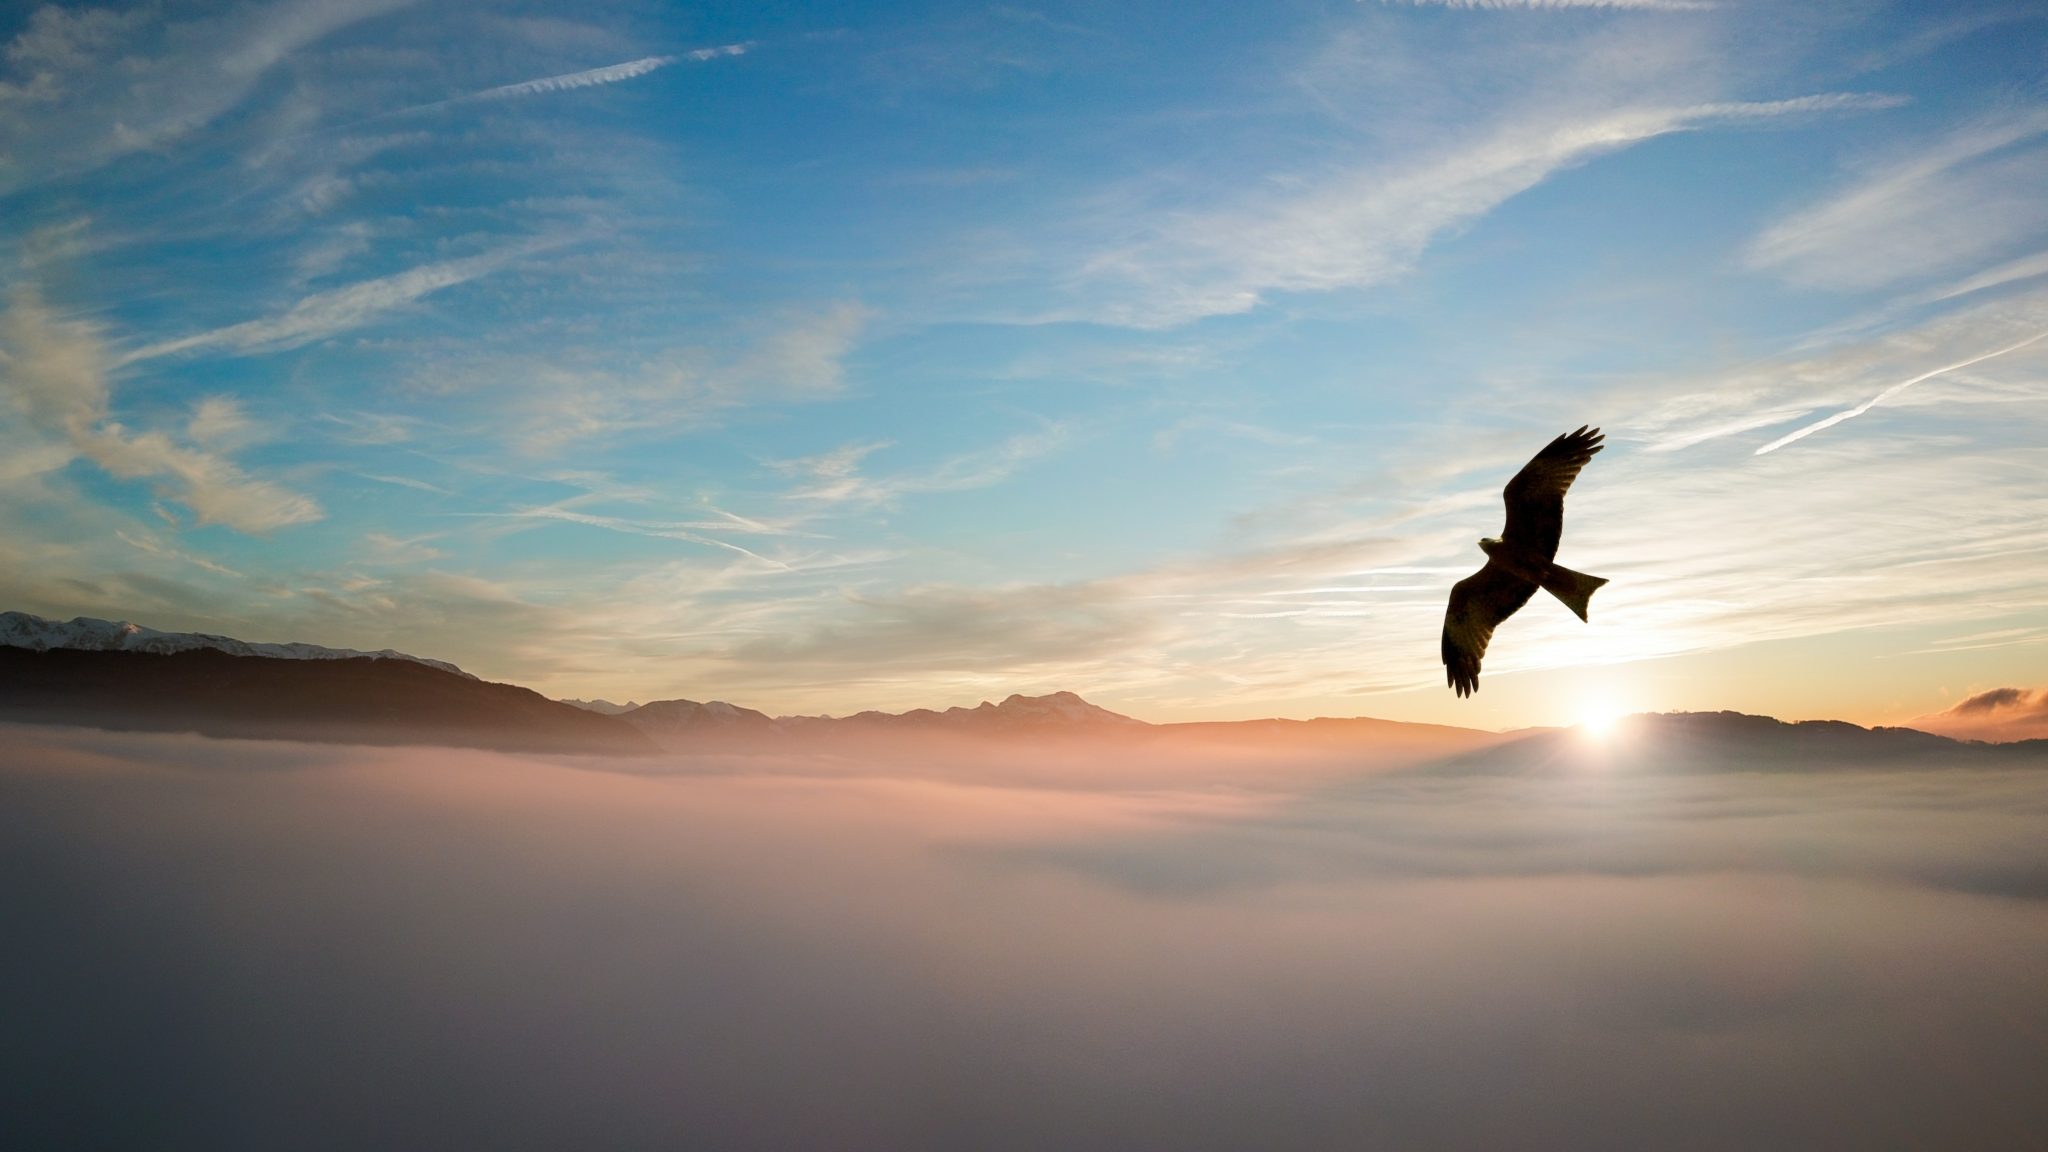 Set to soar - eagle flying over mountains through the clouds with the sun setting in the background